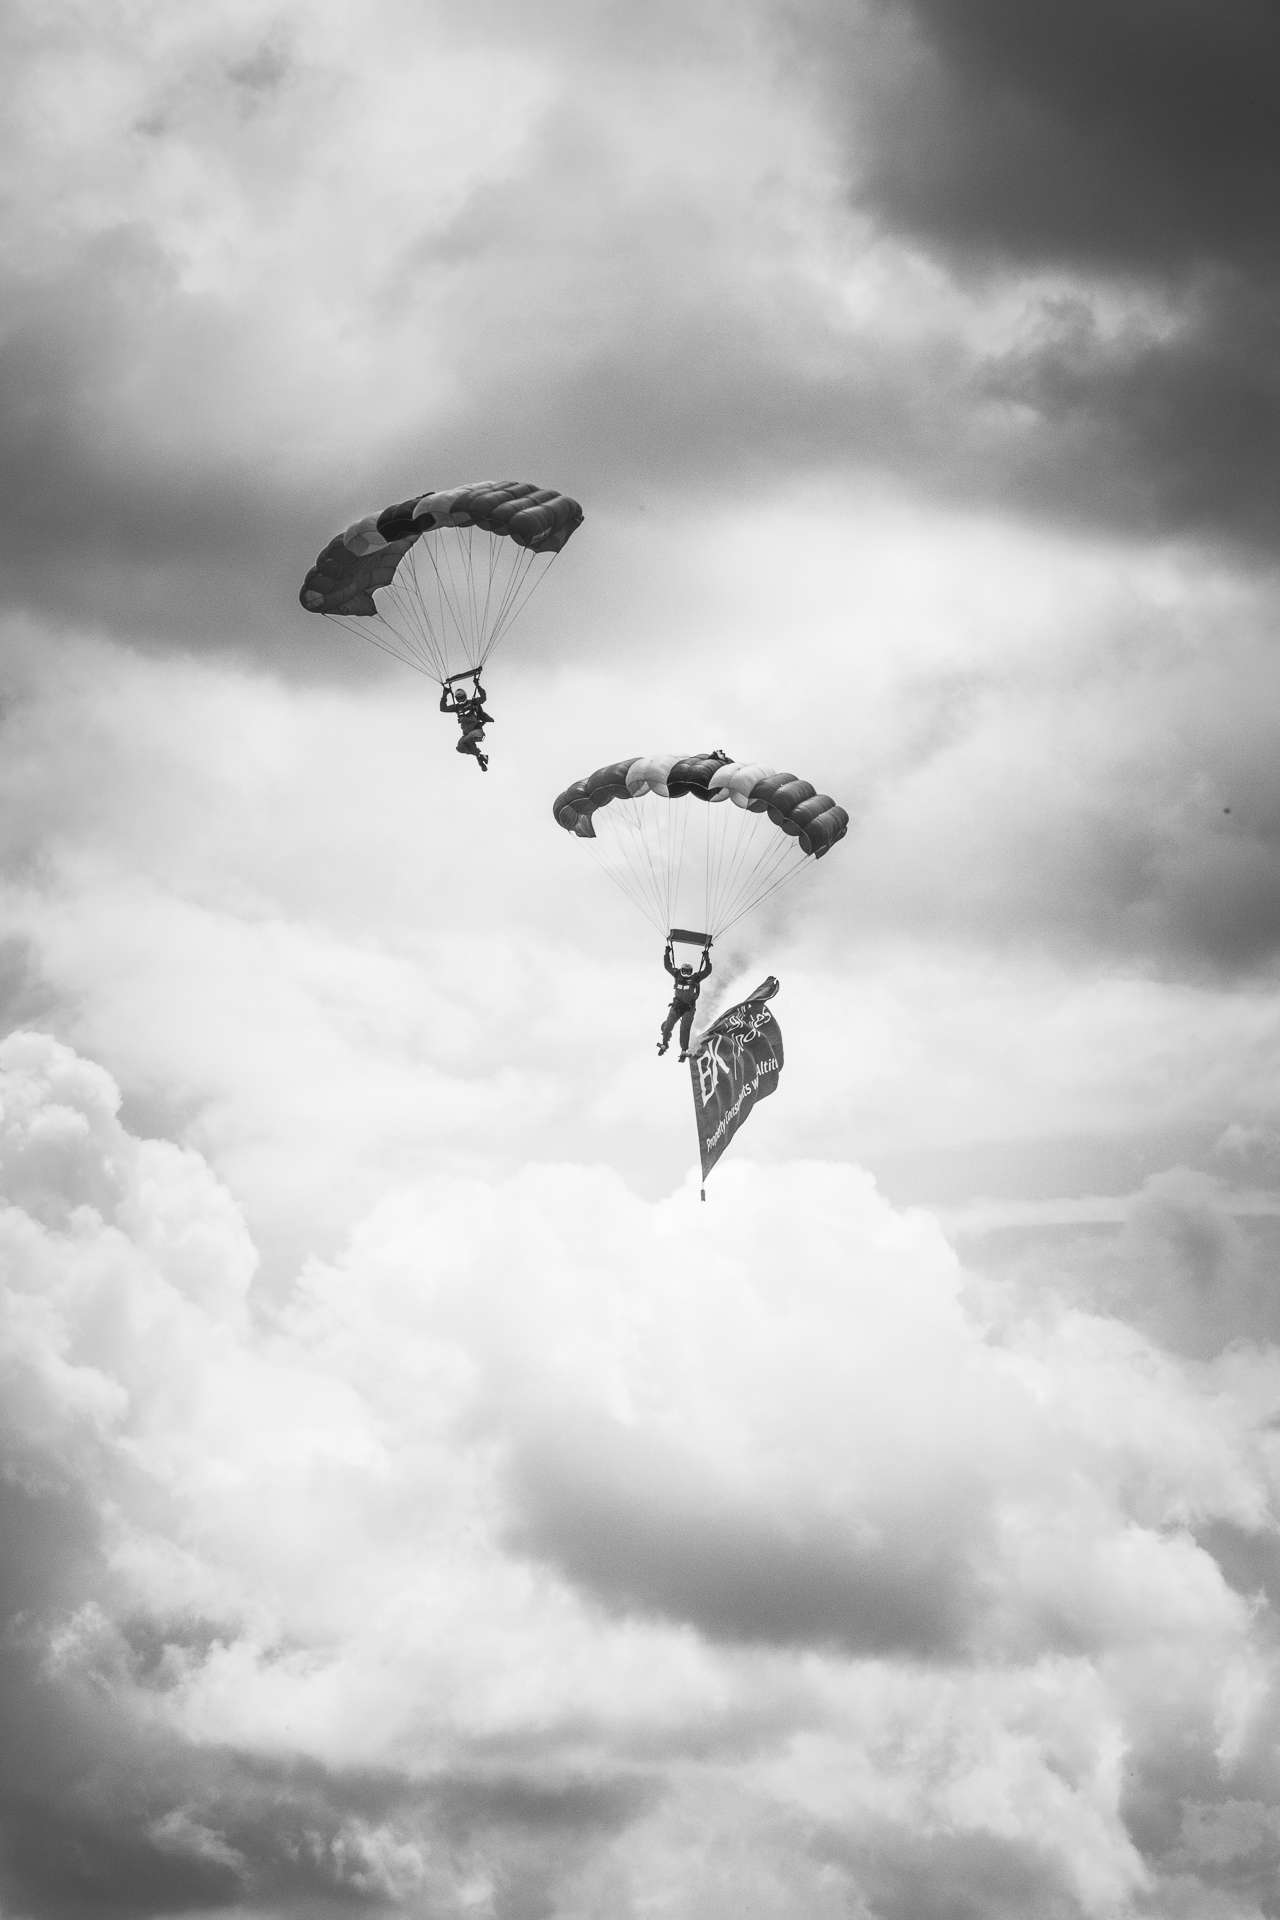 A black and white image of 2 members of the Red Devils Parachute Team, the display team of The Parachute Regiment. Taken just as they break from a stack on their final approach to land at The 3 Counties Show, Malvern in 2017. The lowest man carries a flag attached to his left leg which can be seen here trailing behind him.